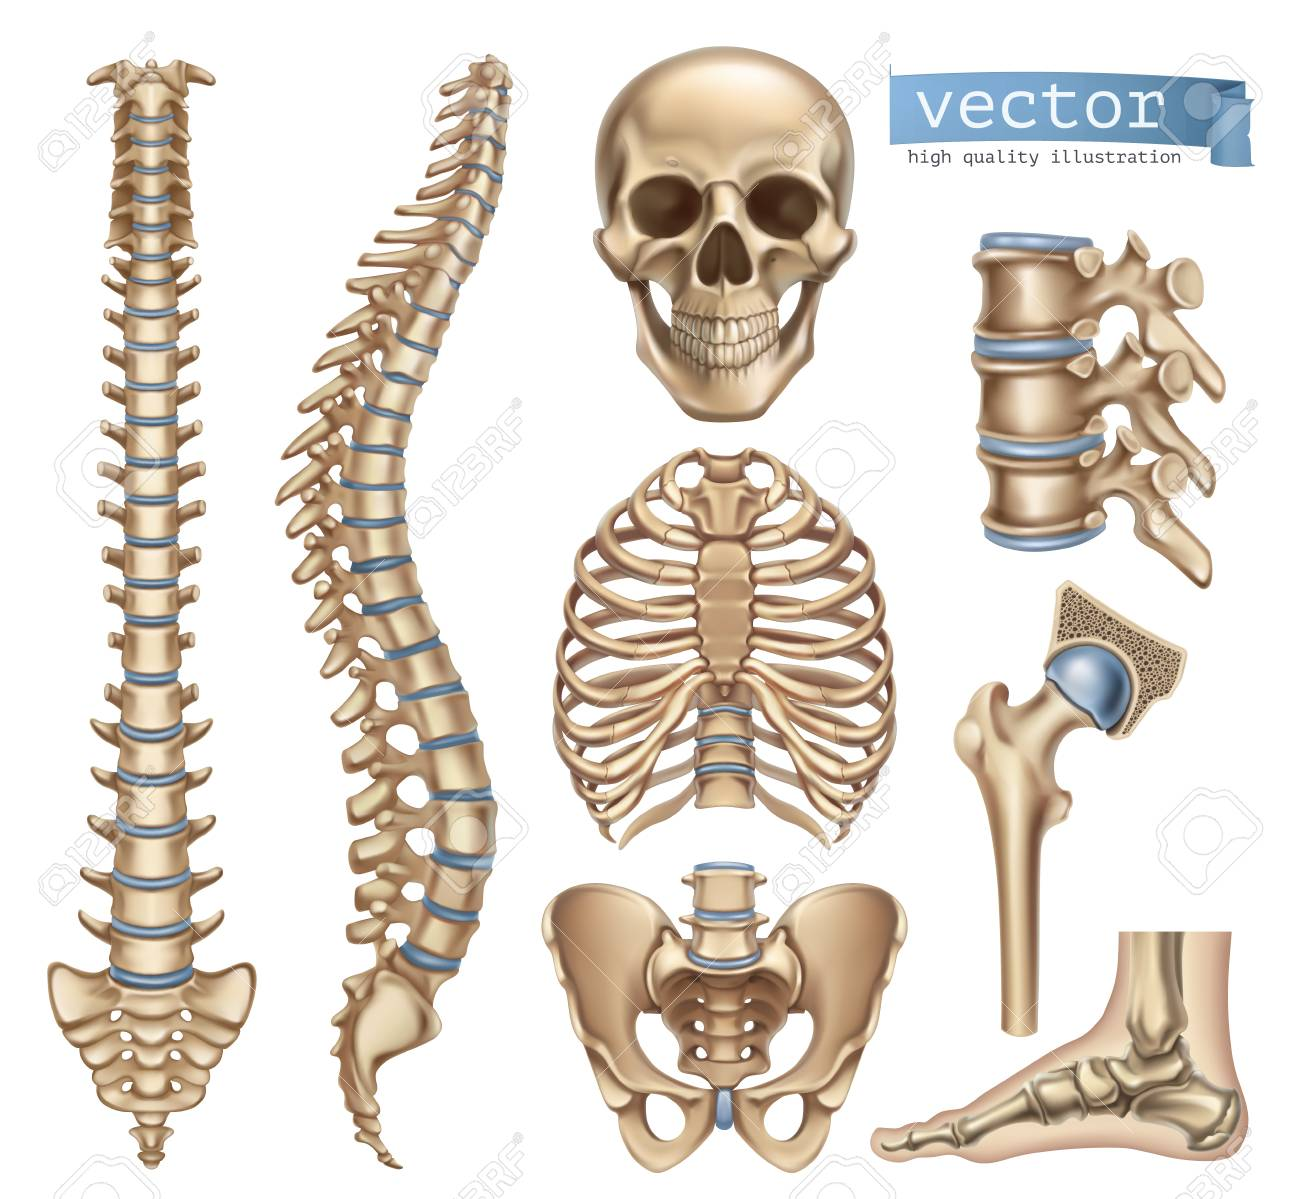 Human Skeleton Structure Skull Spine Rib Cage Pelvis Joints